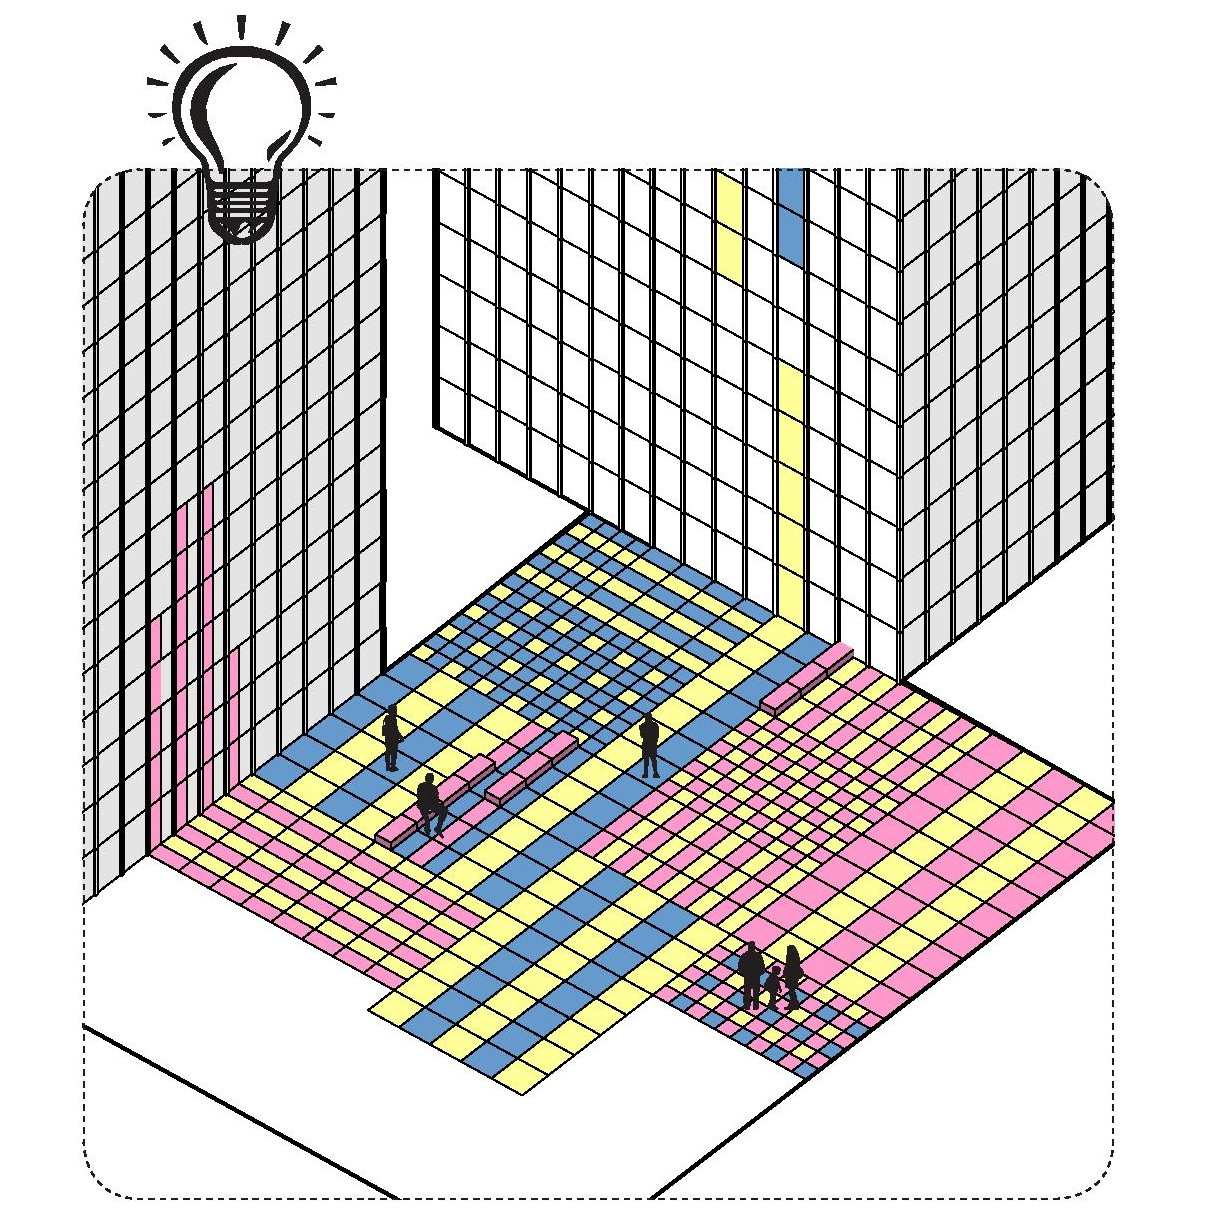 An isometric line drawing showing two tall square buildings - like office blocks or sky scrapers - with a large flat open space between them. Each building exterior is made of rectangular windows, and the lines form these windows have been carried on into the open space, where they intersect, creating a grid. The grid has been coloured with yellow, pink and blue shapes, with the pink shapes being carried on to the side of the first building, and the yellow and blue shapes being carried on to the side of the second building.